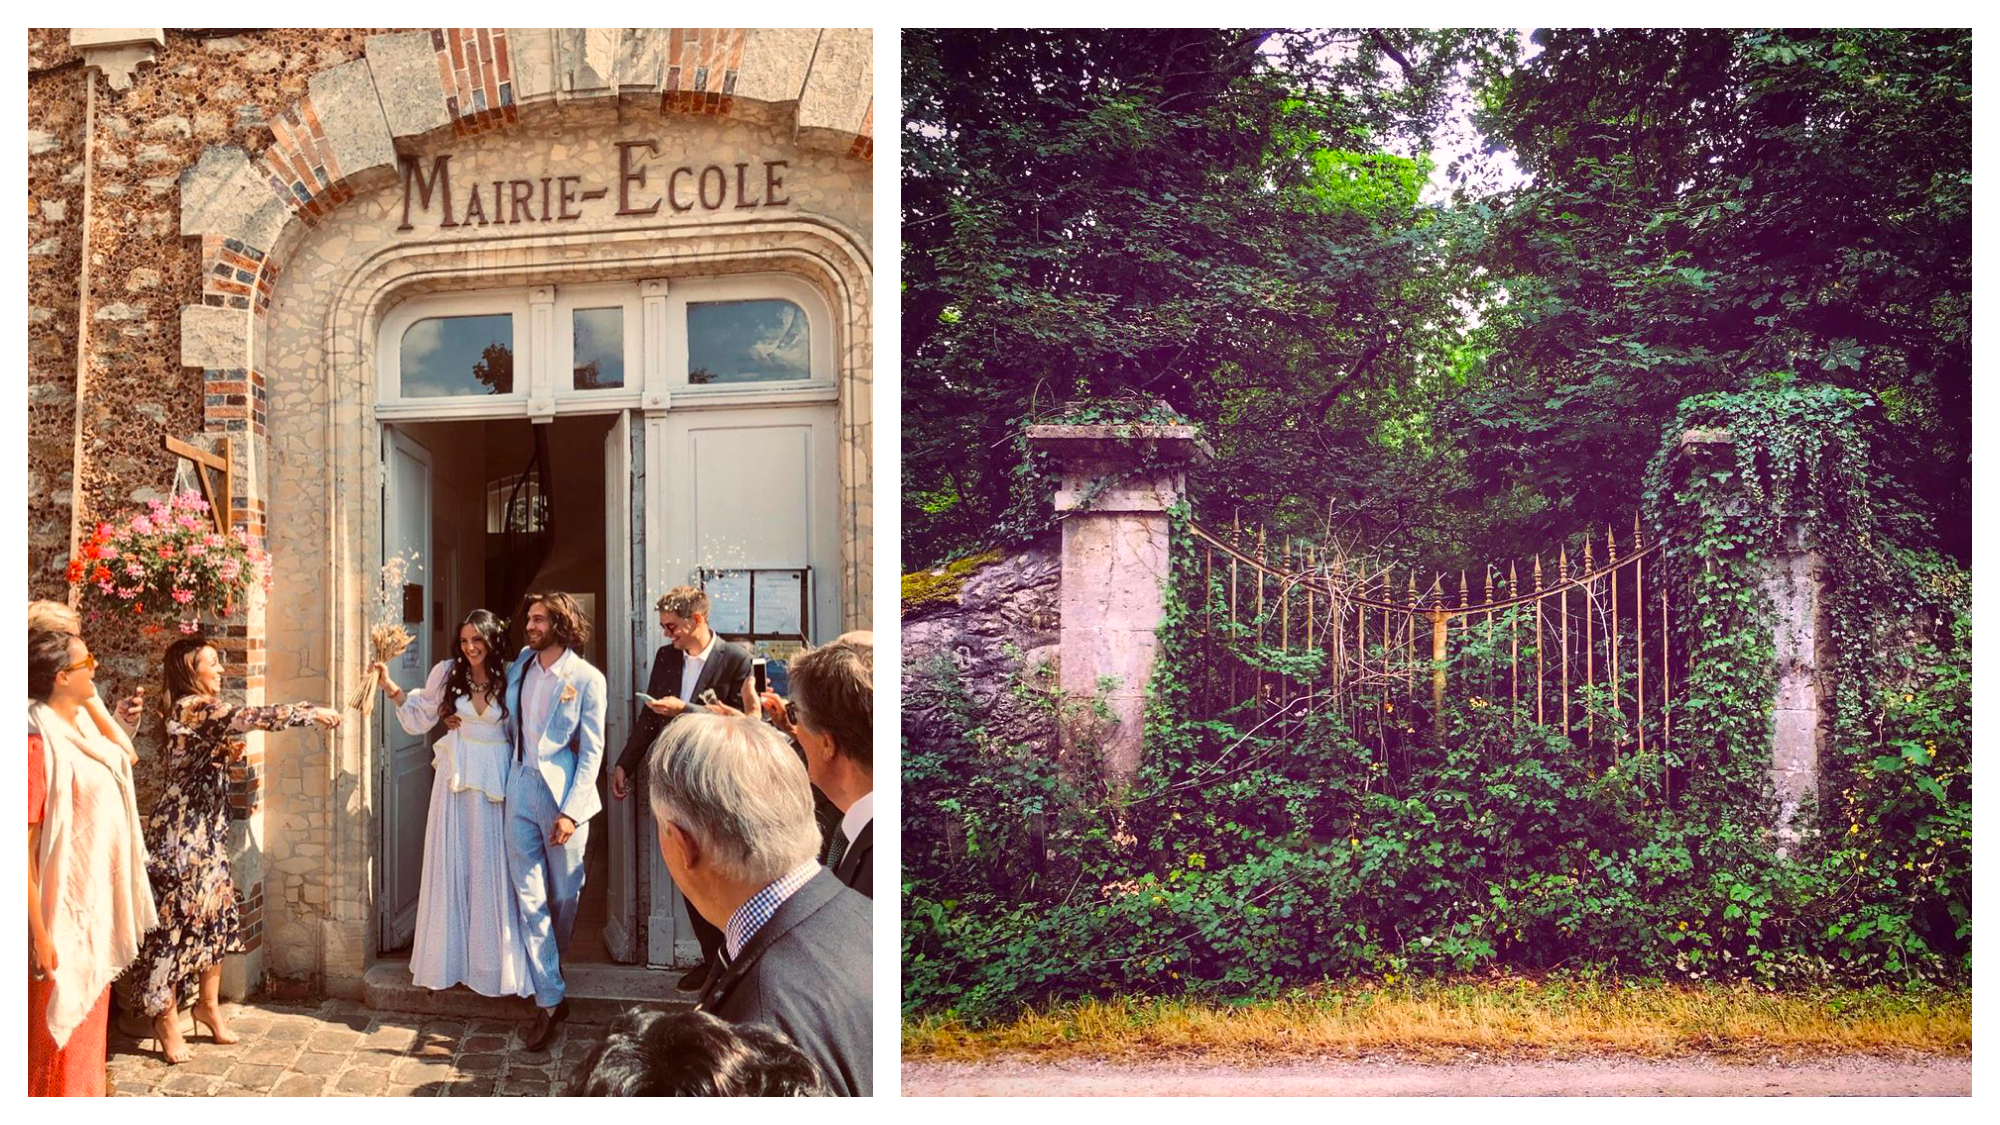 Left: Vanessa Grall, aka Messy Nessy, and her husband at the Mairie on their wedding day, Right: A gate that is overgrown with lush green shrubbery from Messy Nessy's Instagram account